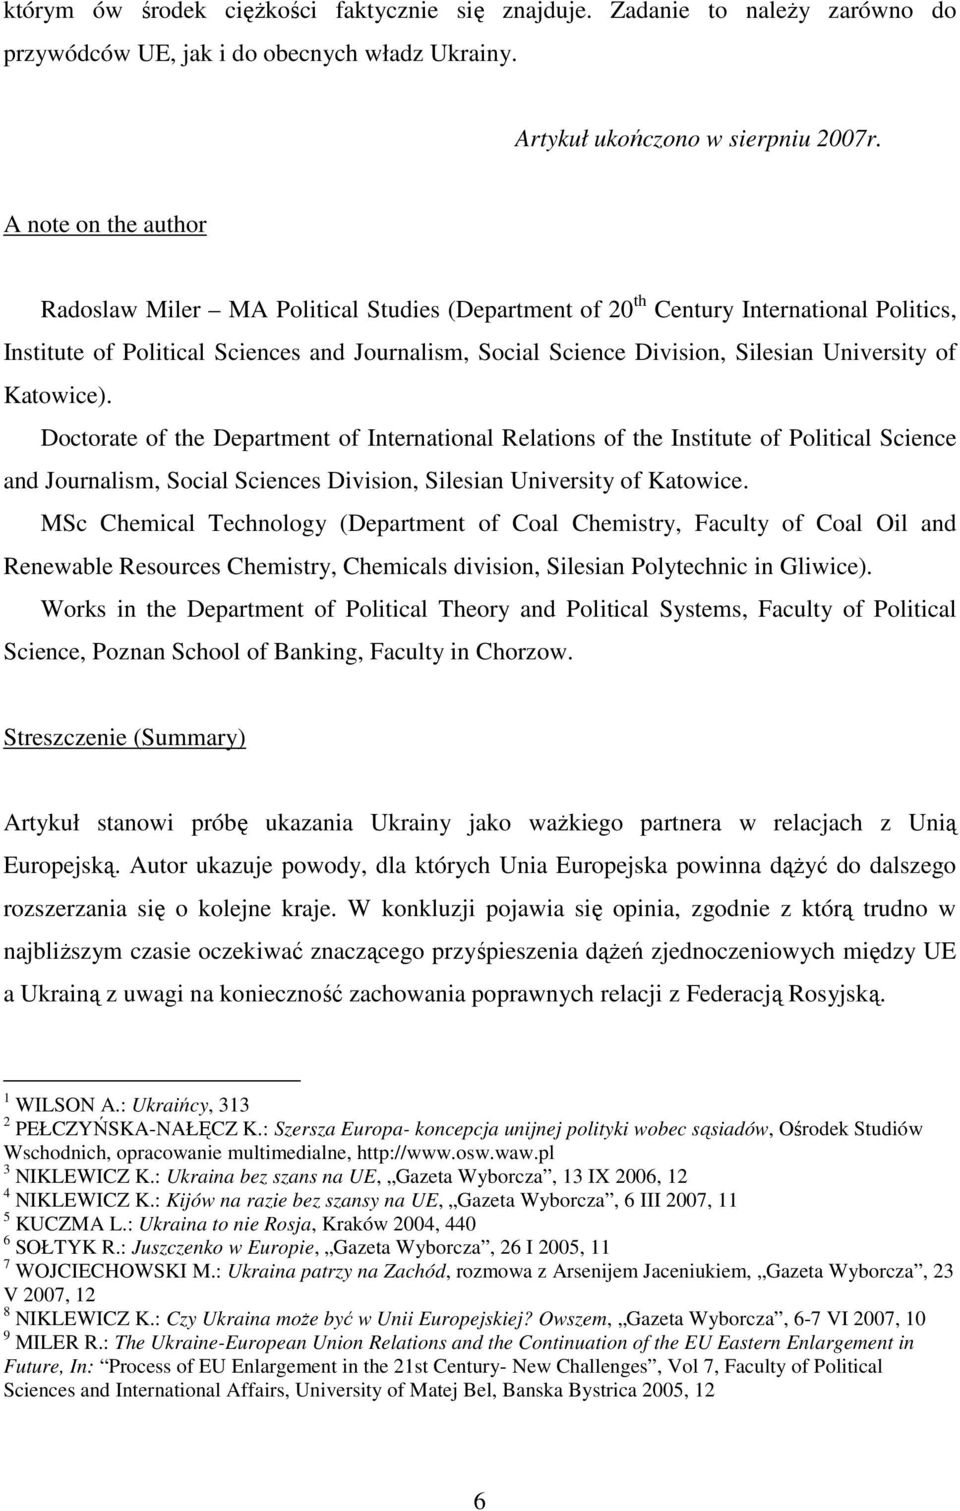 University of Katowice). Doctorate of the Department of International Relations of the Institute of Political Science and Journalism, Social Sciences Division, Silesian University of Katowice.